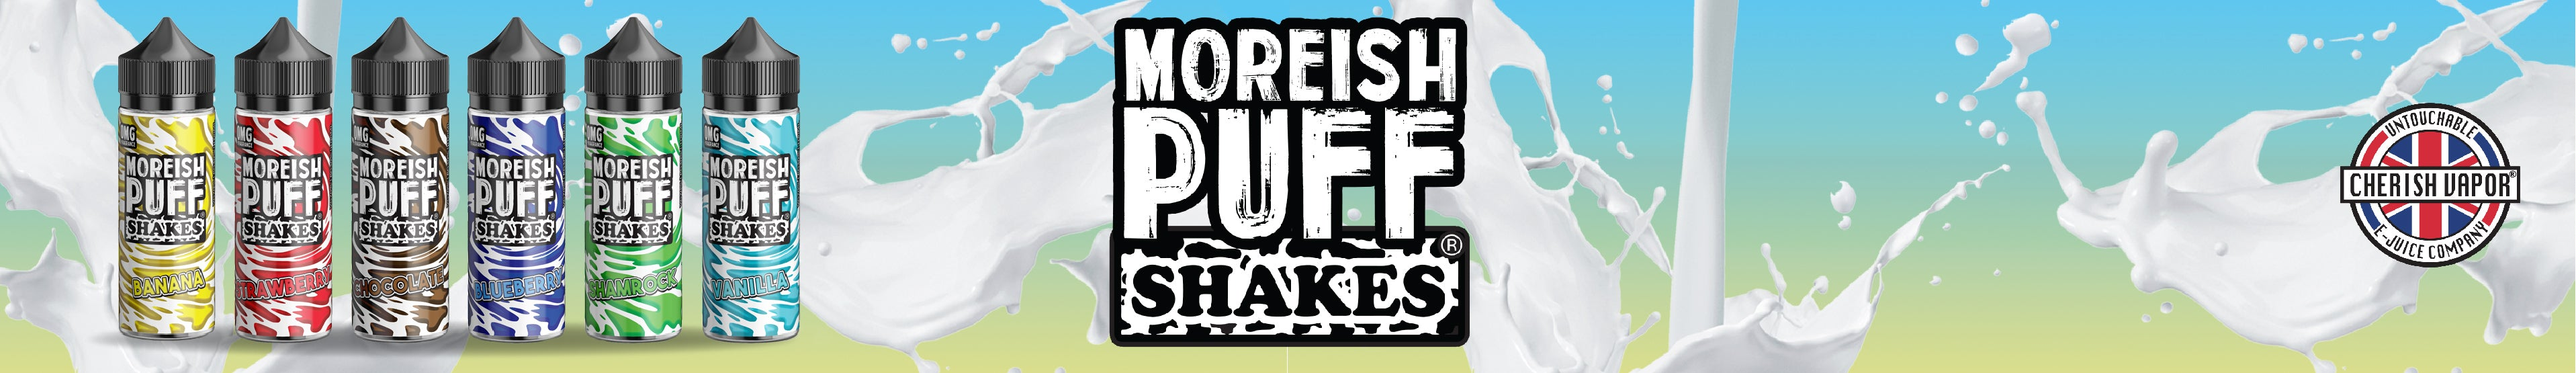 Moreish Puff Shakes